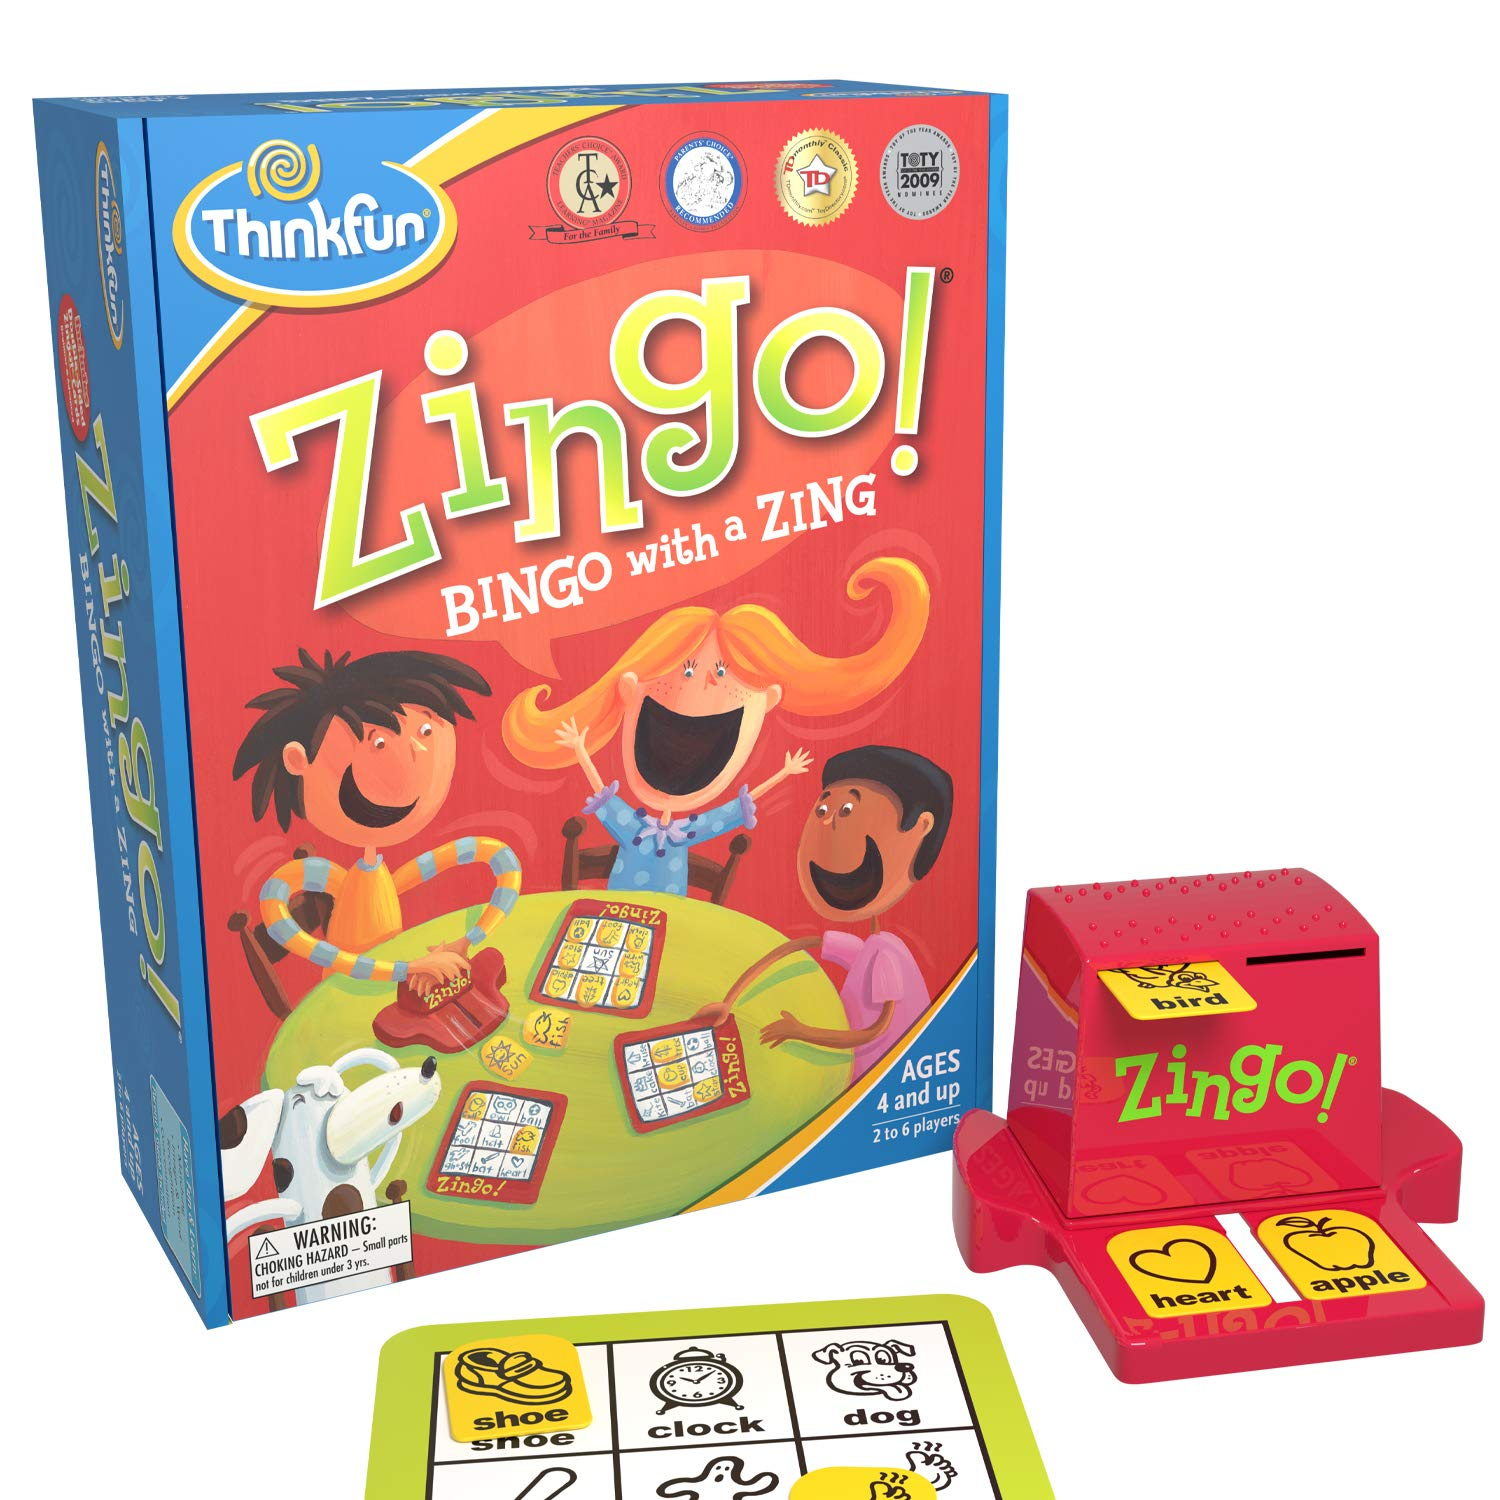 ThinkFun Zingo Bingo Award Winning Game for Pre-Readers and Early Readers Age 4 and Up - One of the Most Popular Board Games for Preschoolers and Their Families by Think Fun